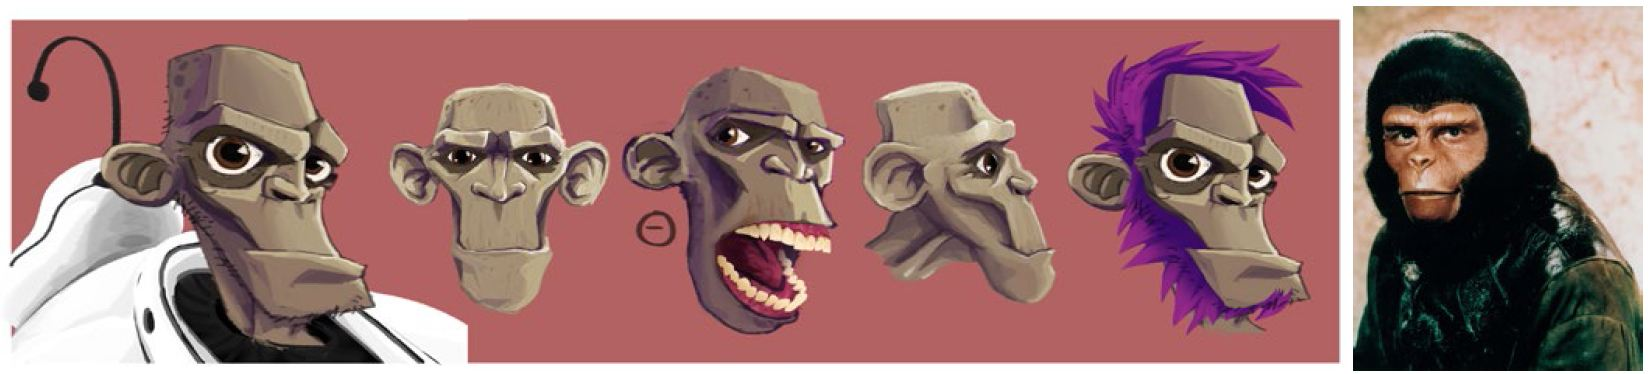 "Gordos face from different angles (2011/2012) and""Planet of the apes"" (1968)"